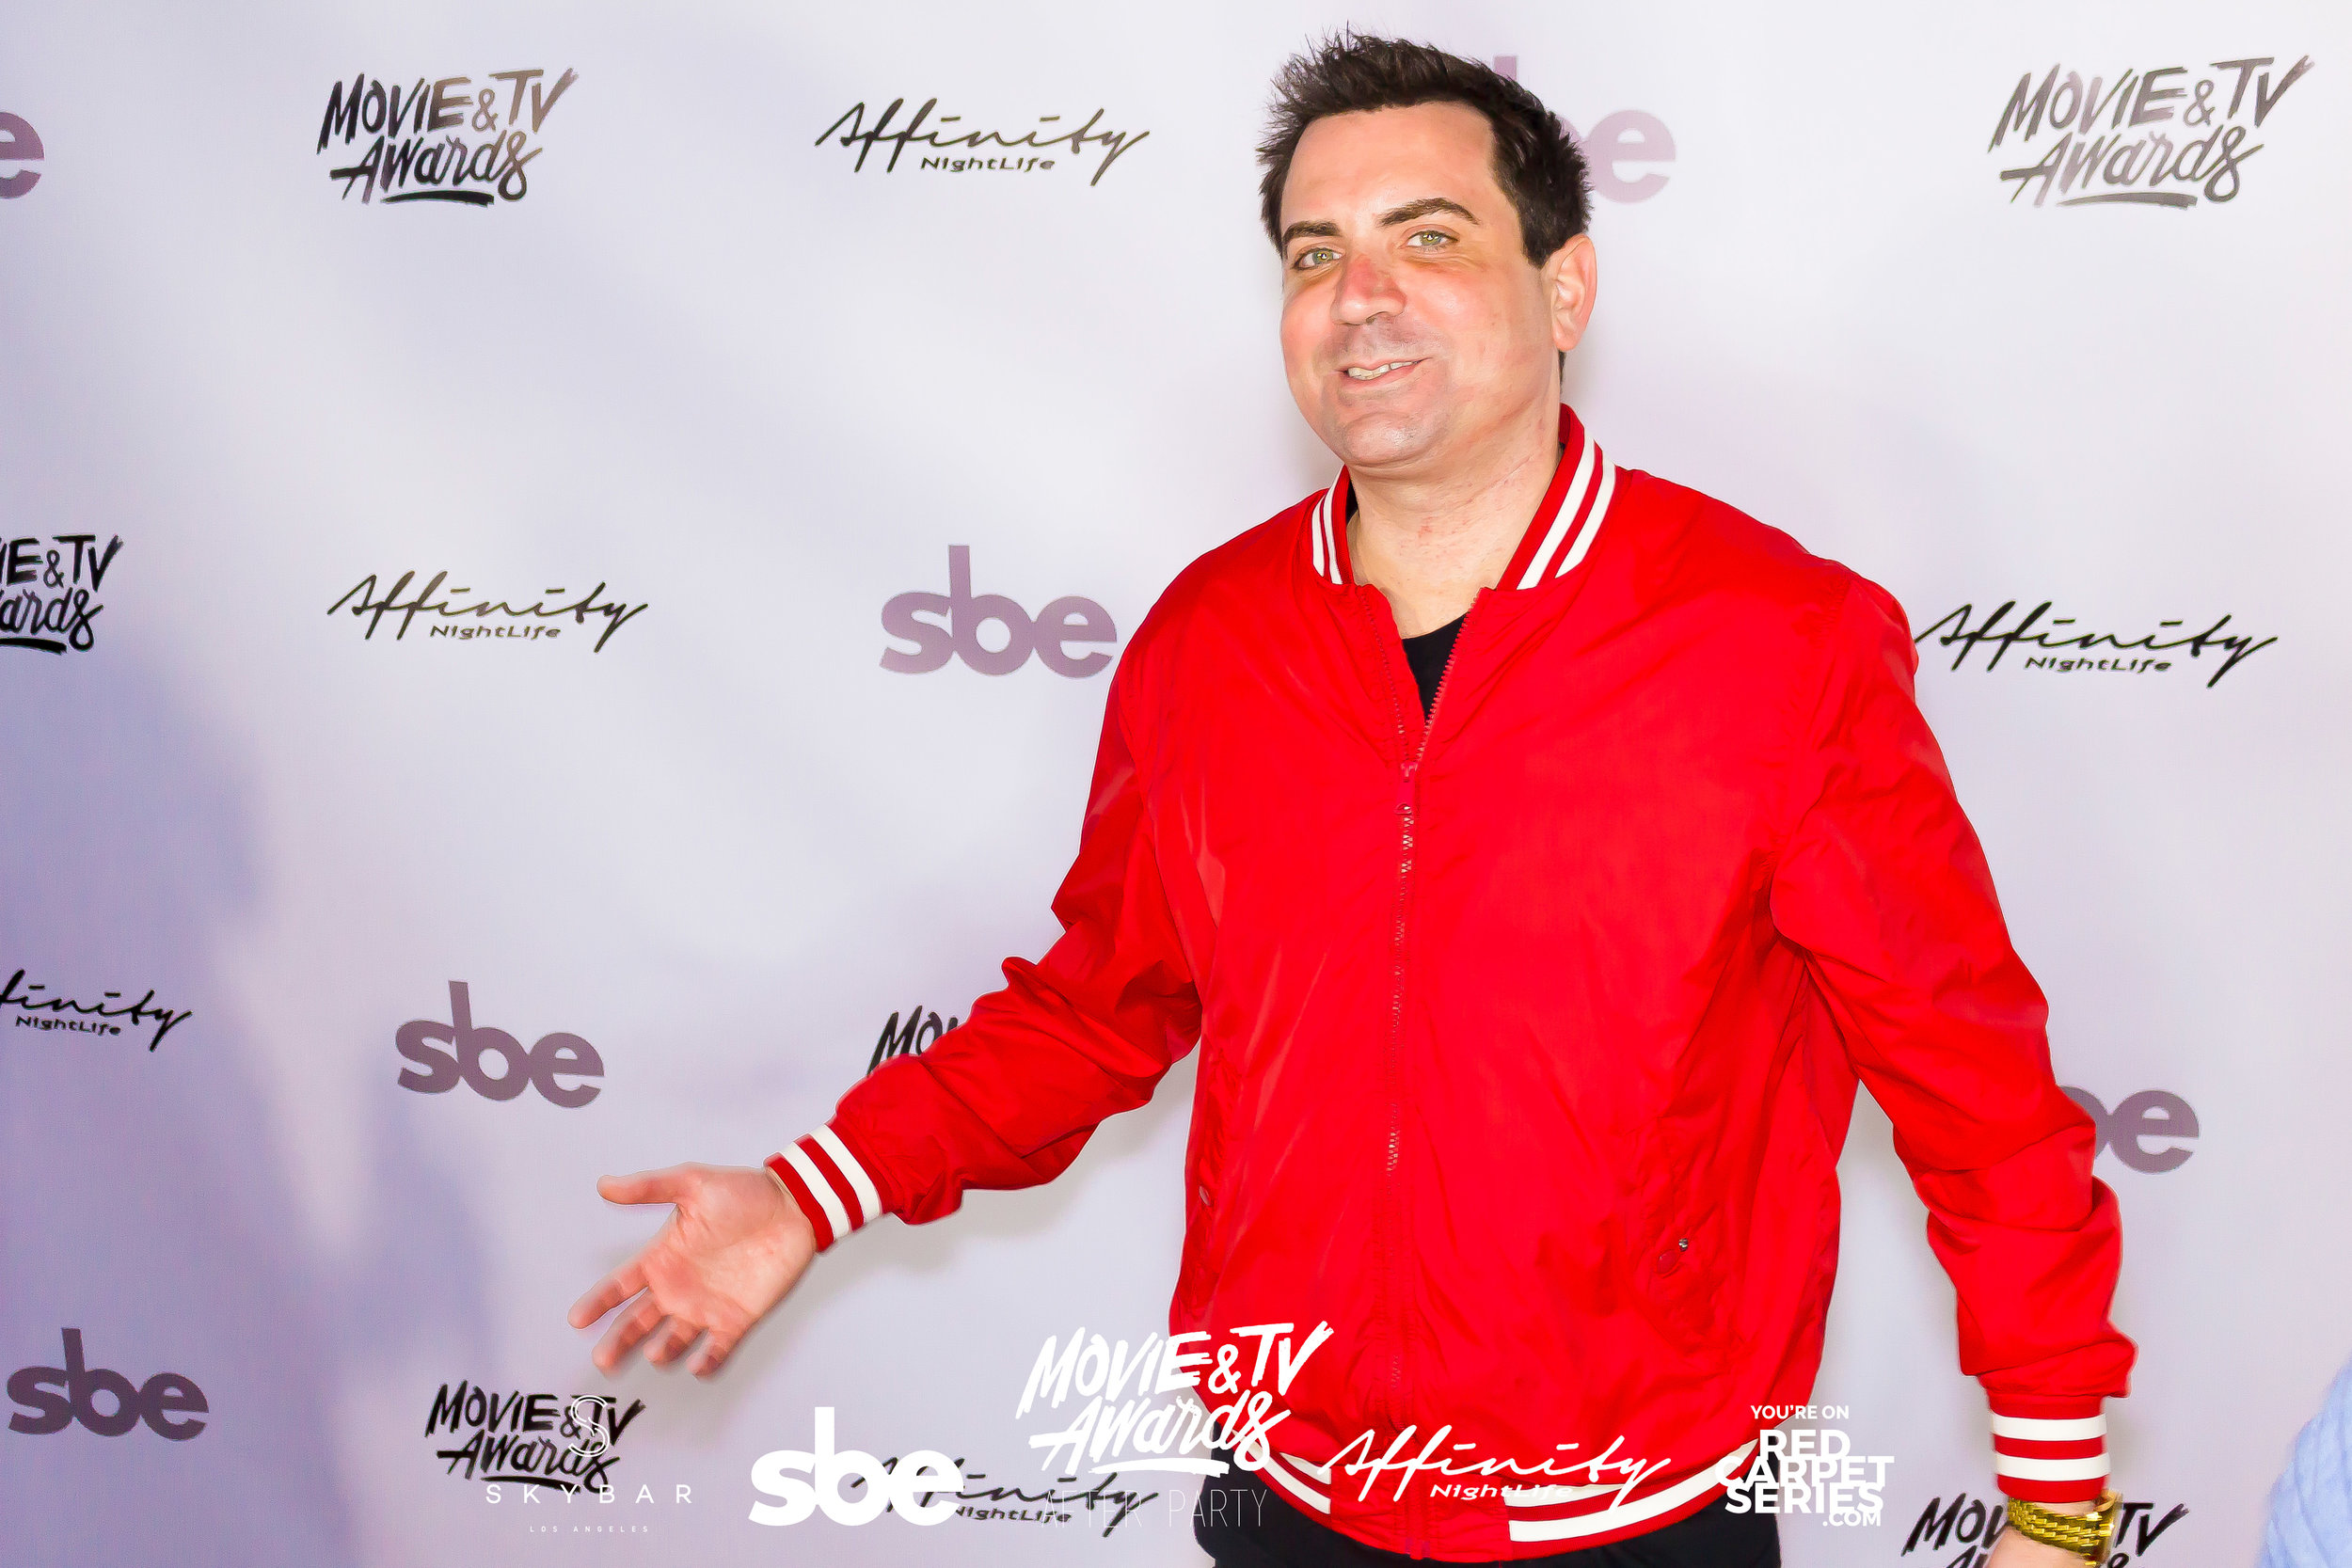 Affinity Nightlife MTV Movie & TV Awards After Party - Skybar at Mondrian - 06-15-19 - Vol. 1_153.jpg